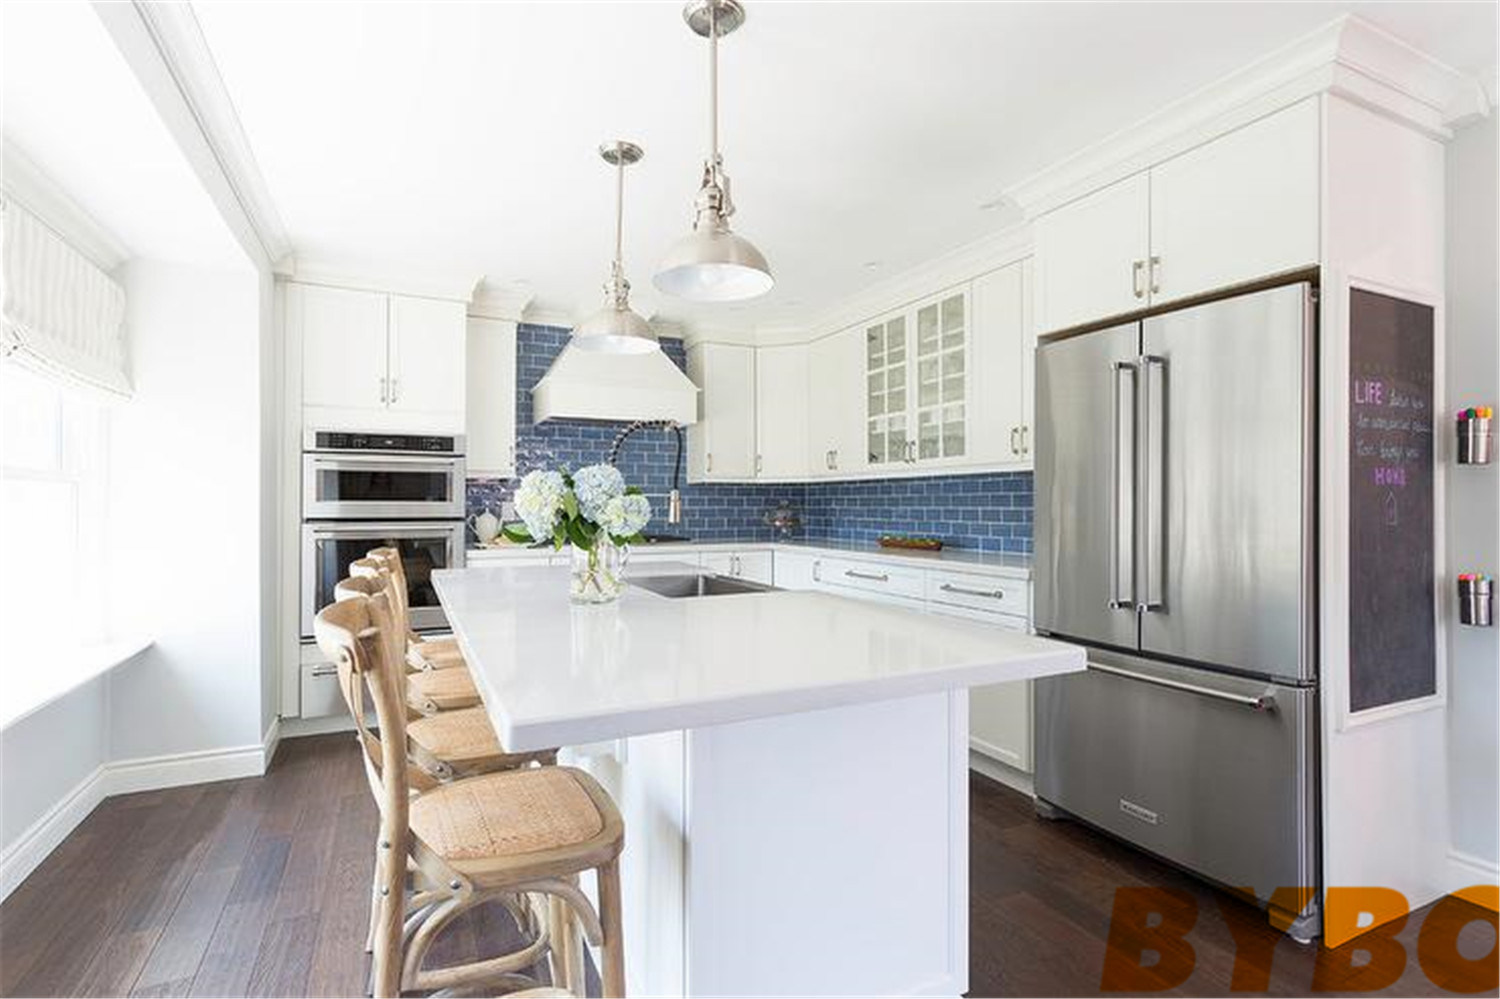 Which kitchen is better: glossy or matte?